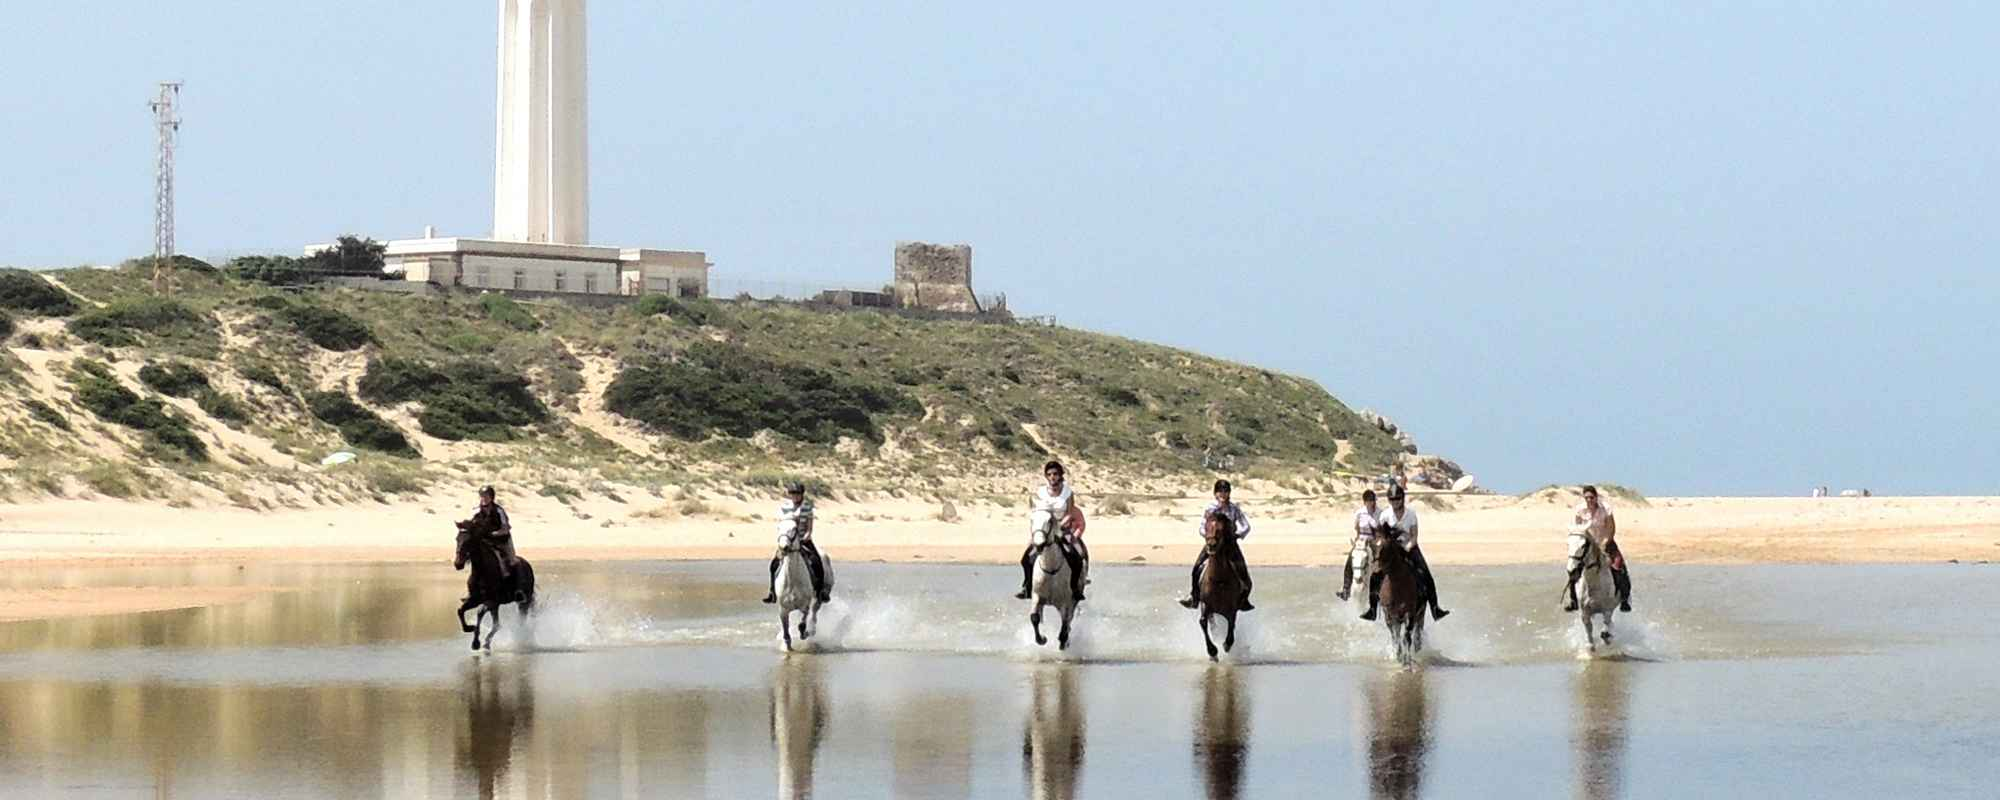 Horses cantering across Cape Trafalgar on our horse riding holiday.